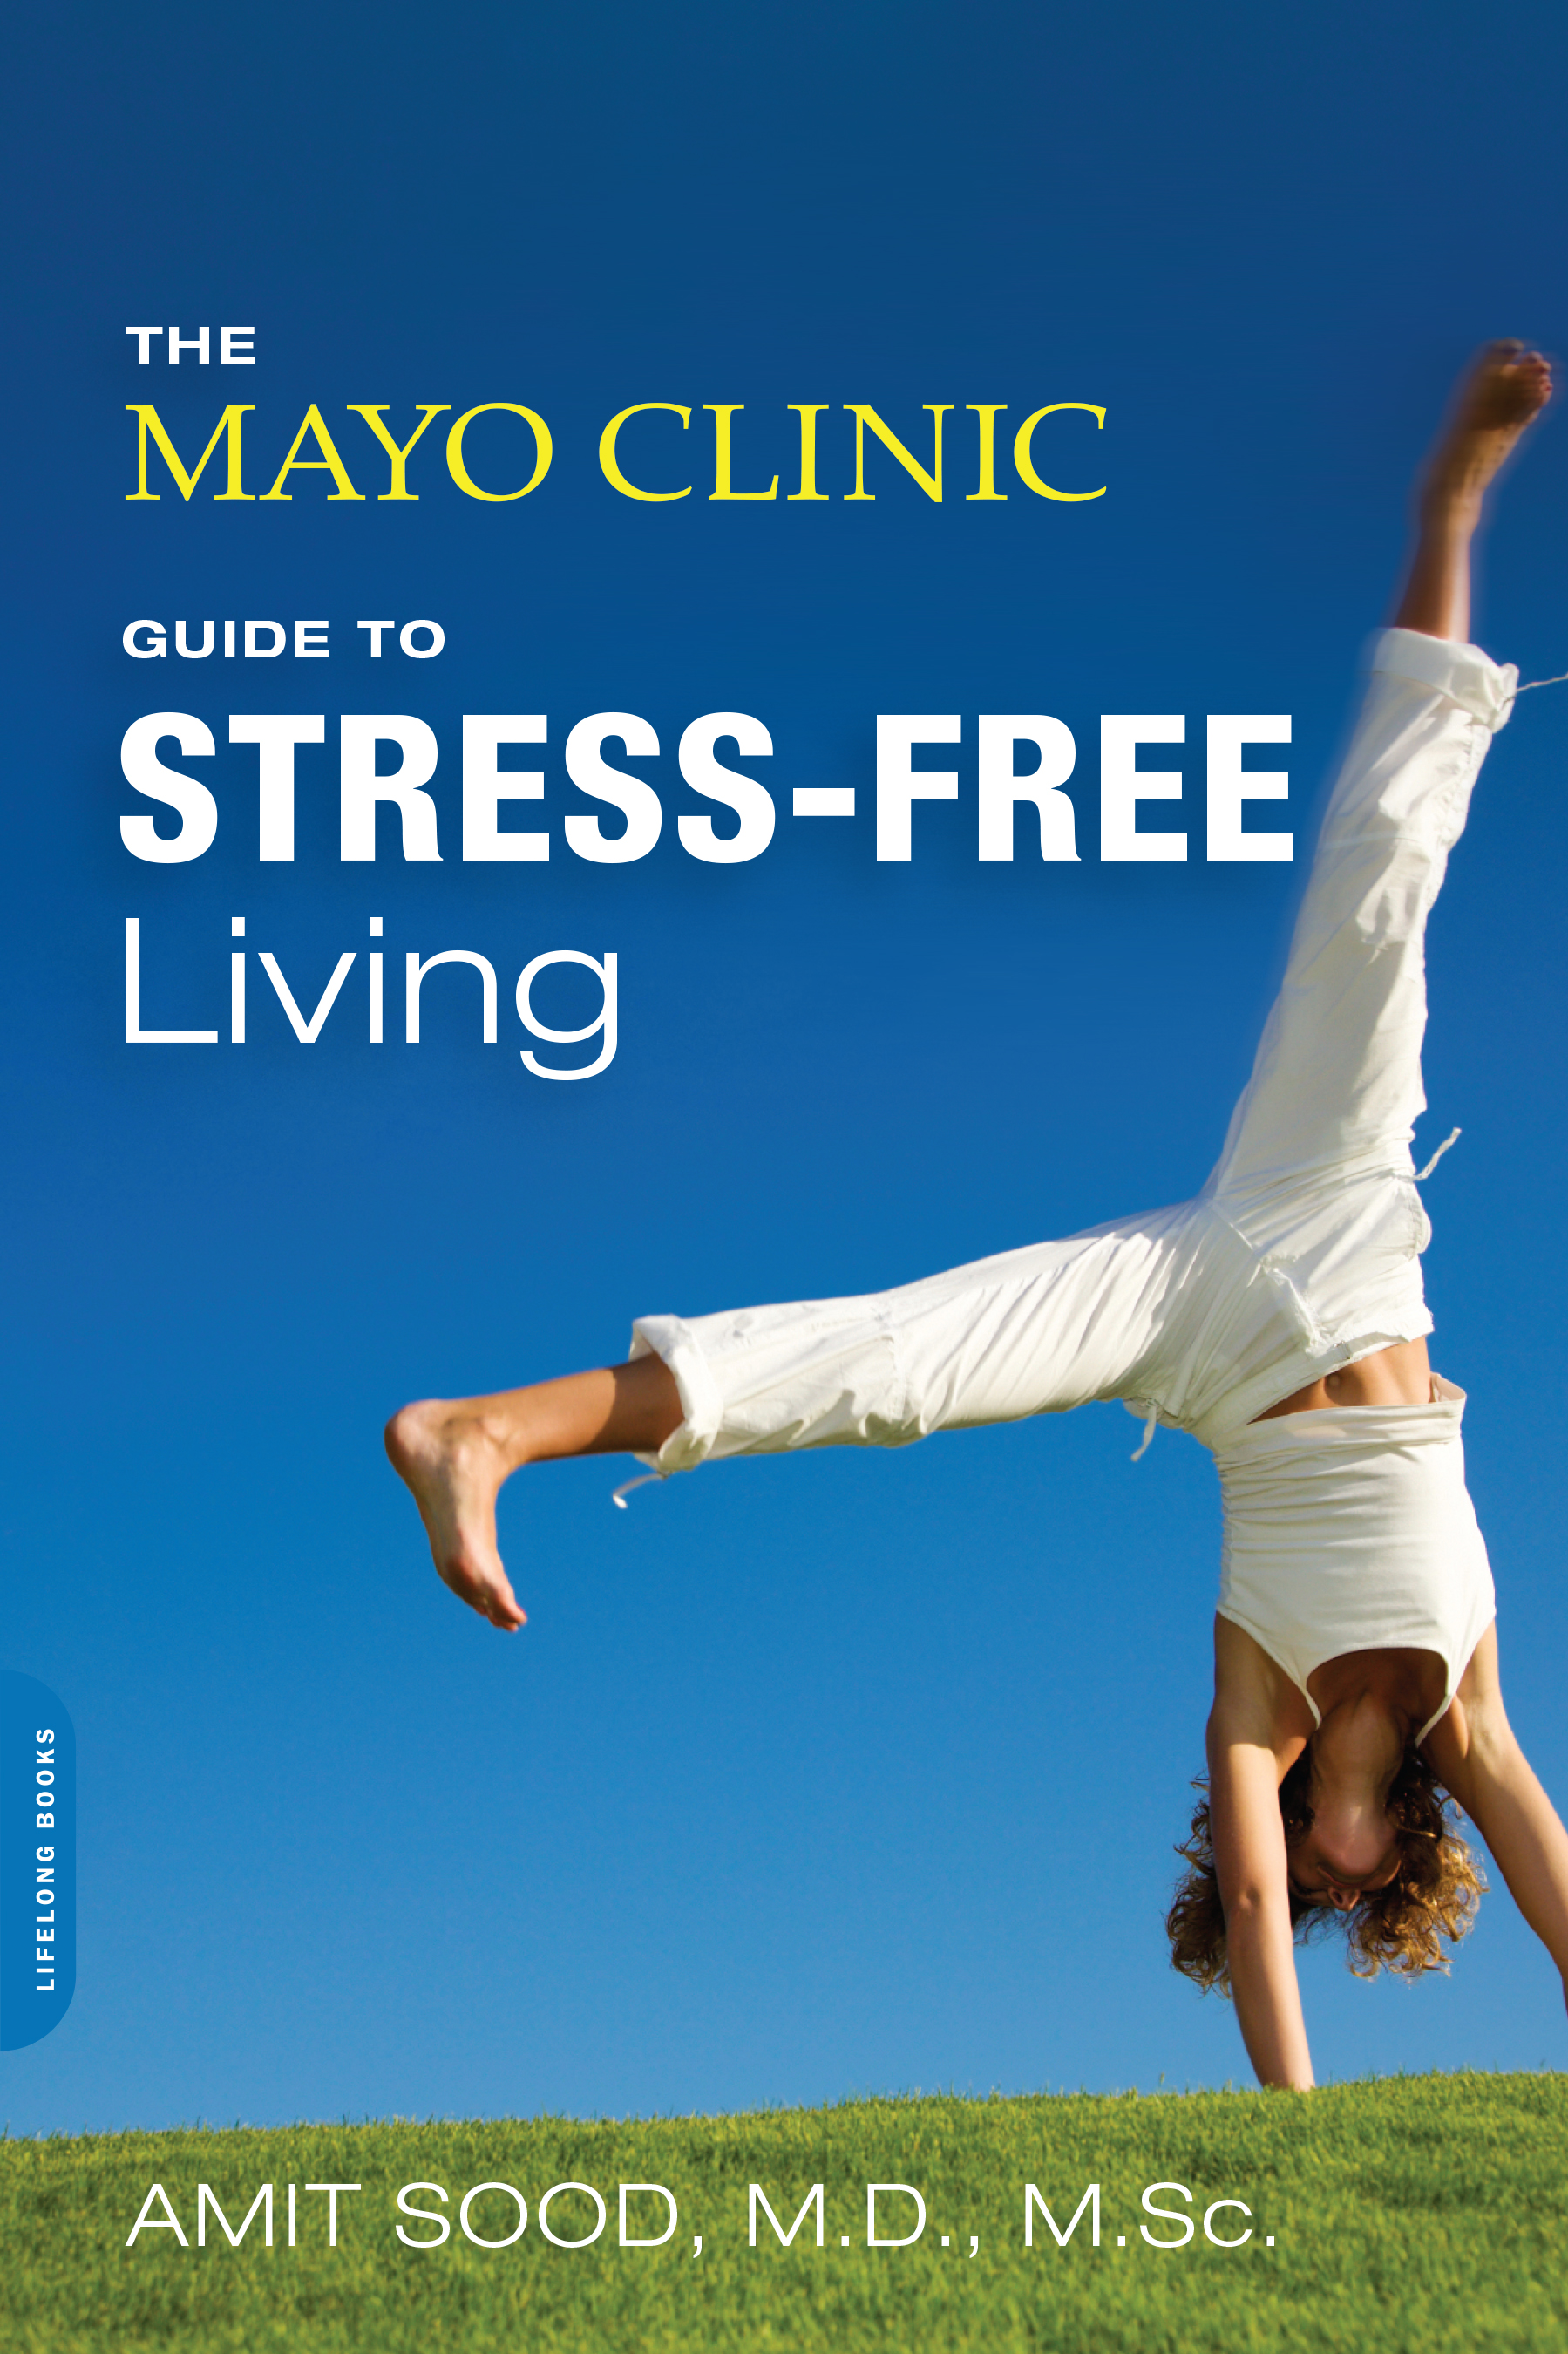 Book cover Mayo Clinic's Guide to Stress-Free Living, with female doing cartwheel